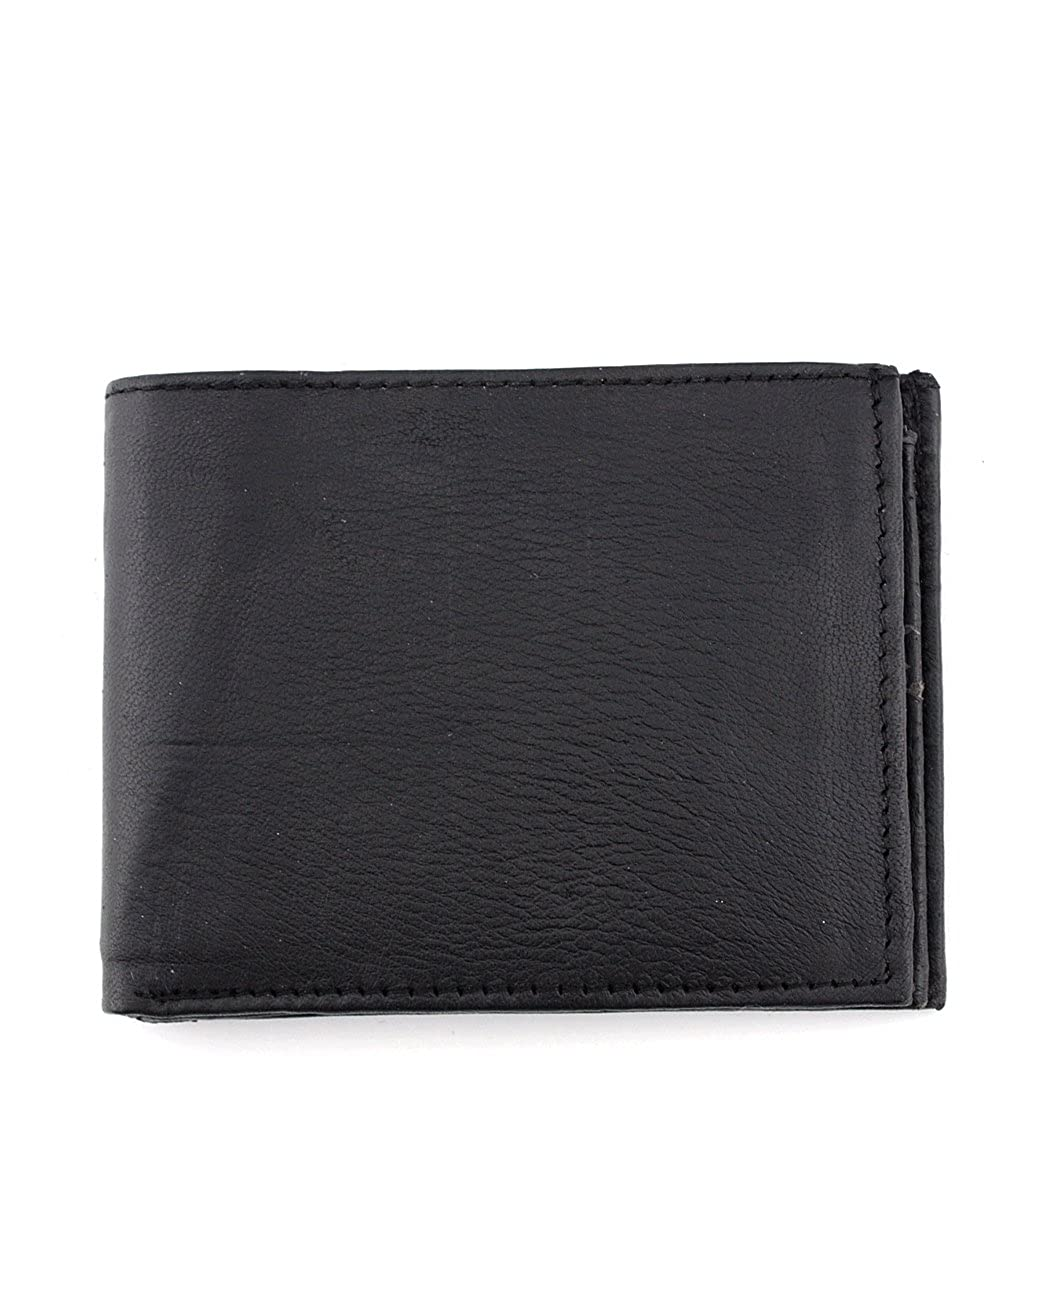 Amazon.com: NYfashion101 de los hombres Bifold cartera de ...